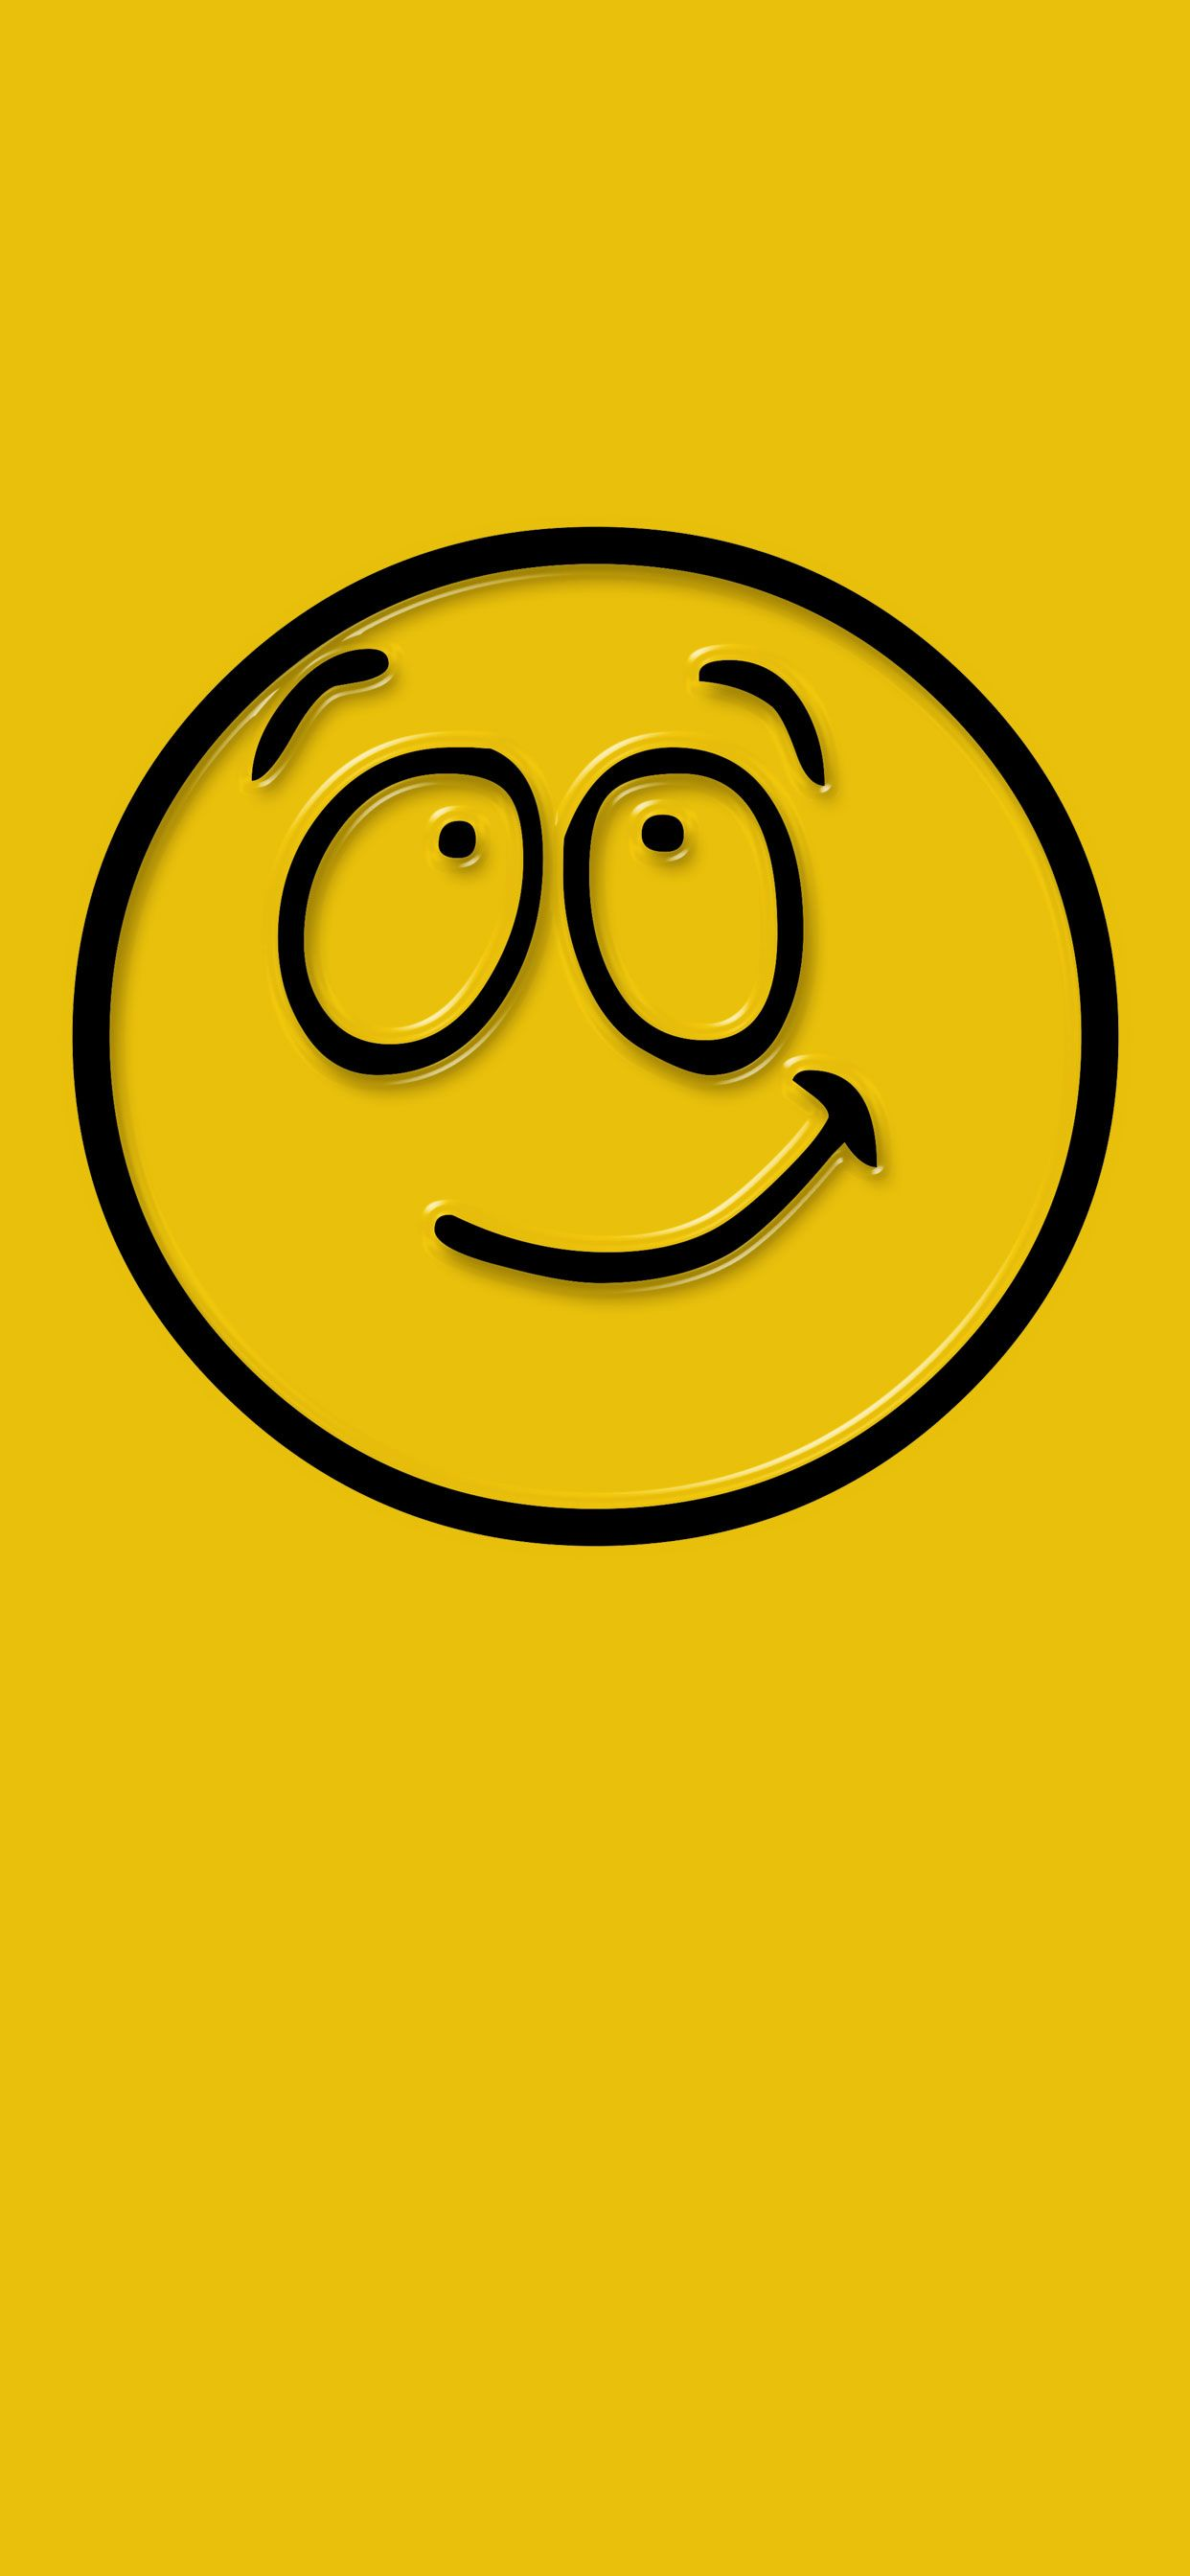 Happy Face iPhone Wallpapers Top Free Happy Face iPhone